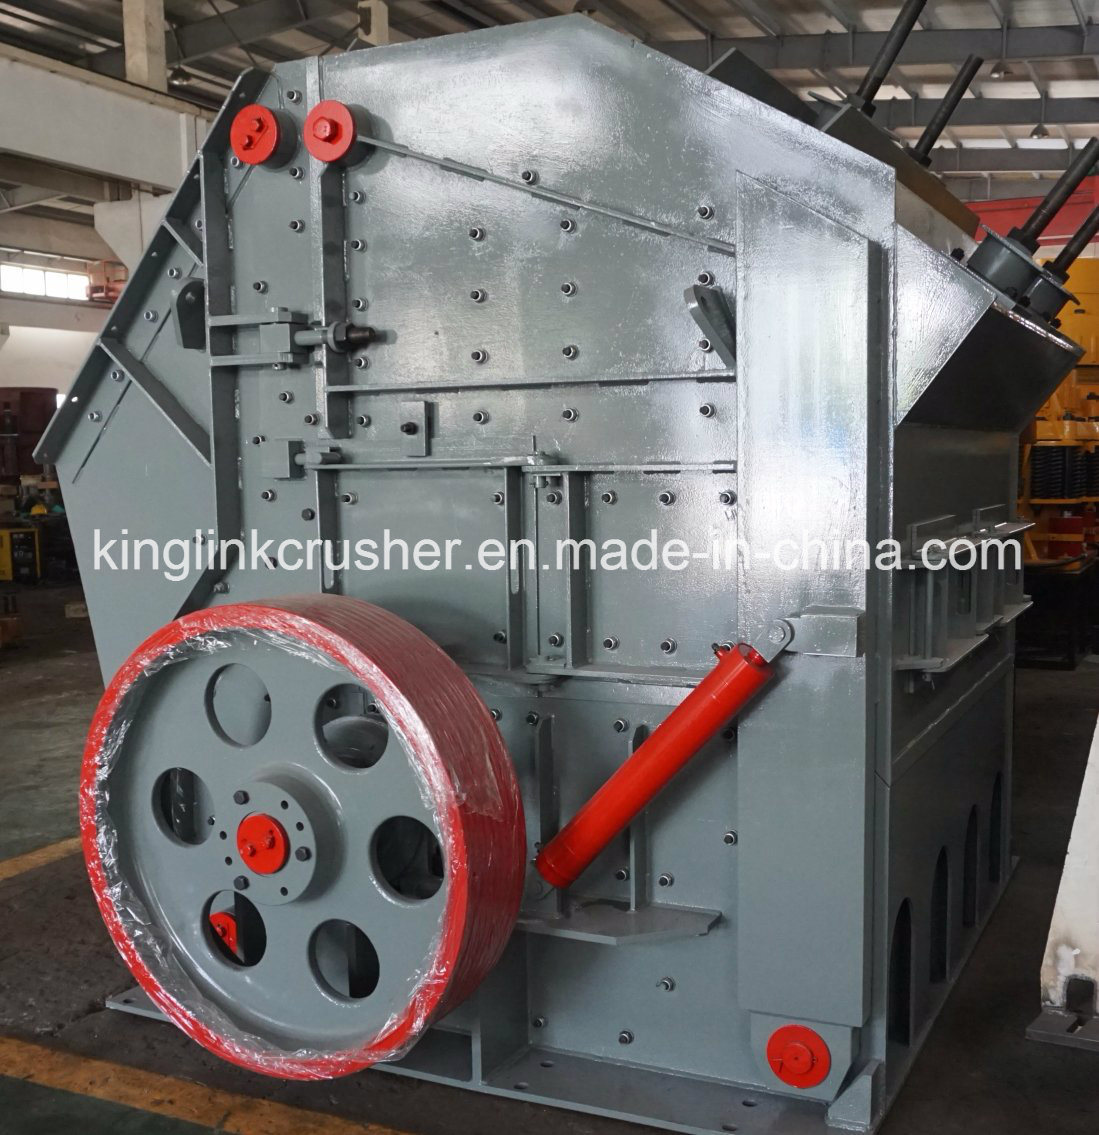 Pfc Series Hydraulic Impact Crusher